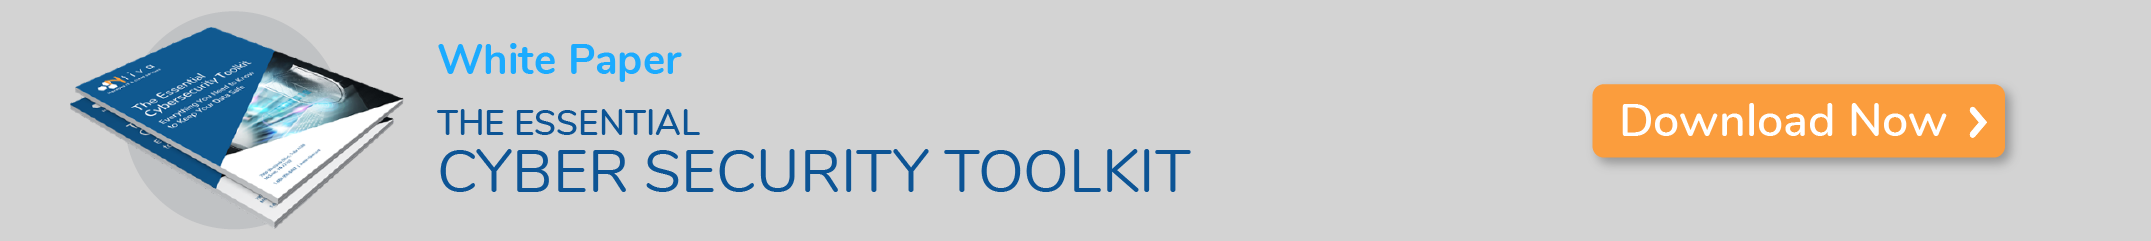 The Essential Cybersecurity Toolkit E-Book Download Call to Action